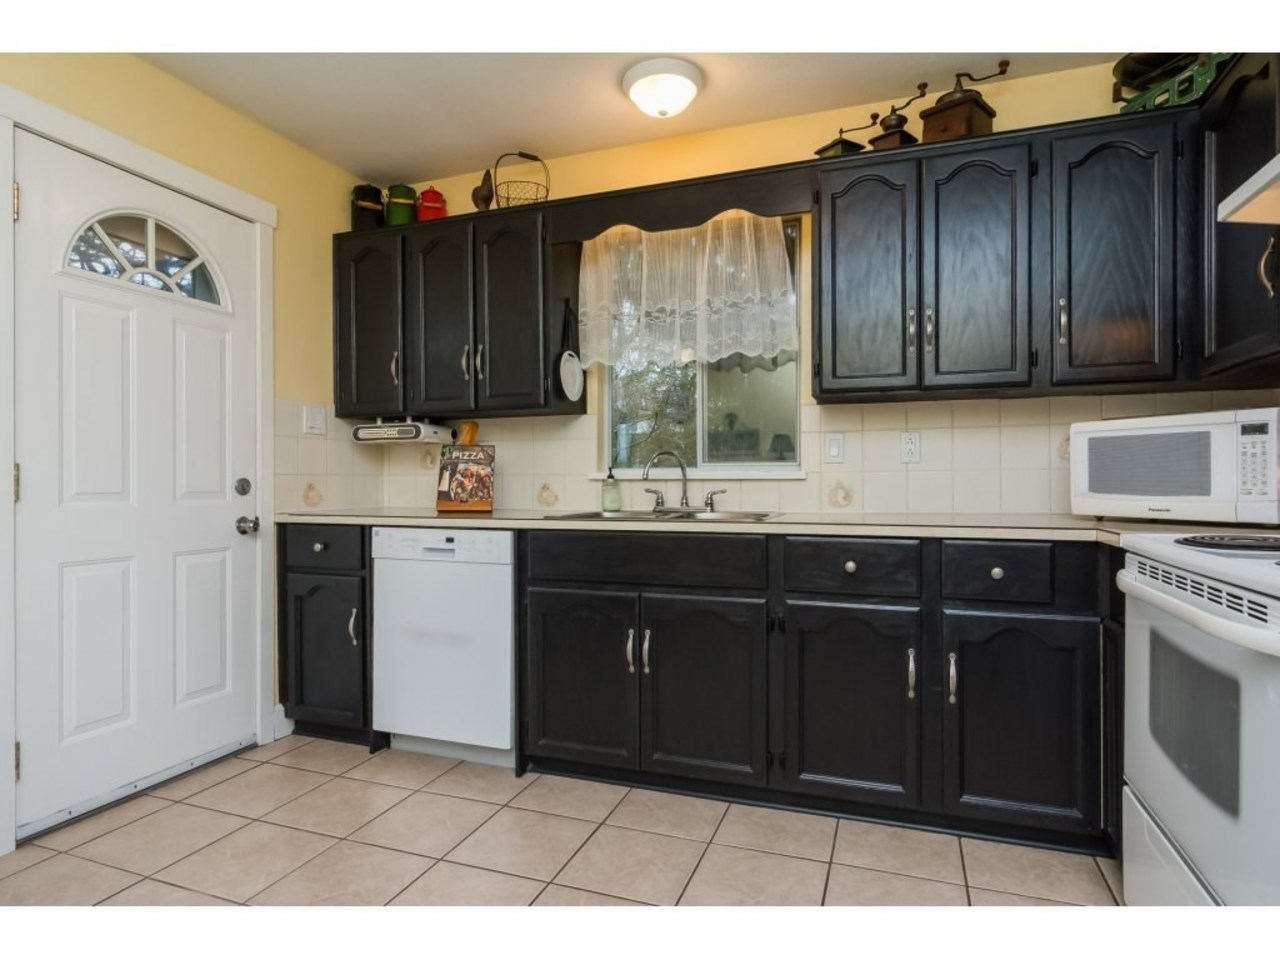 4 Bed Home by Solon Bucholtz Fraser Valley Realtor at 6079 173a Street, Cloverdale BC, Cloverdale